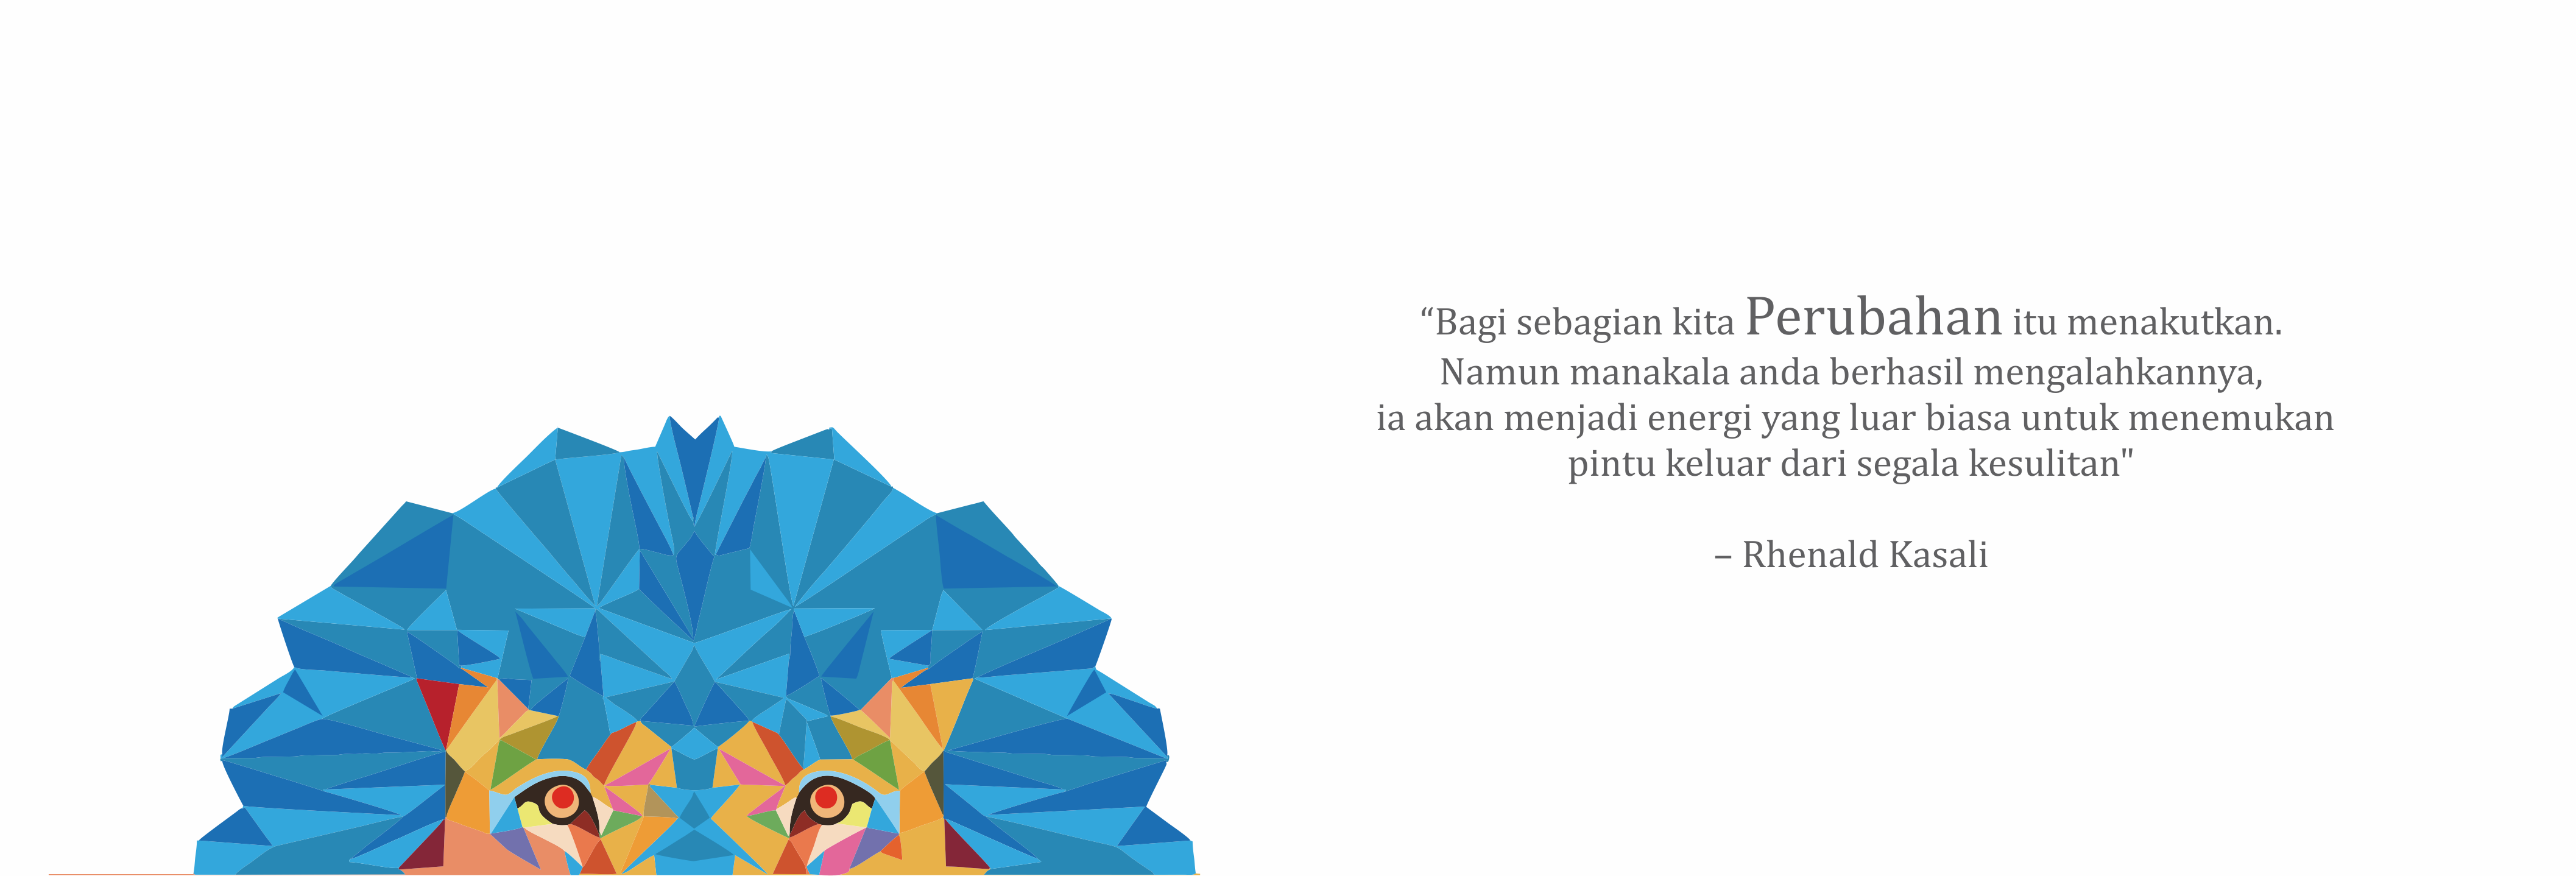 http://www.rumahperubahan.co.id/wp-content/uploads/2014/03/Web-Slide-Picture.png